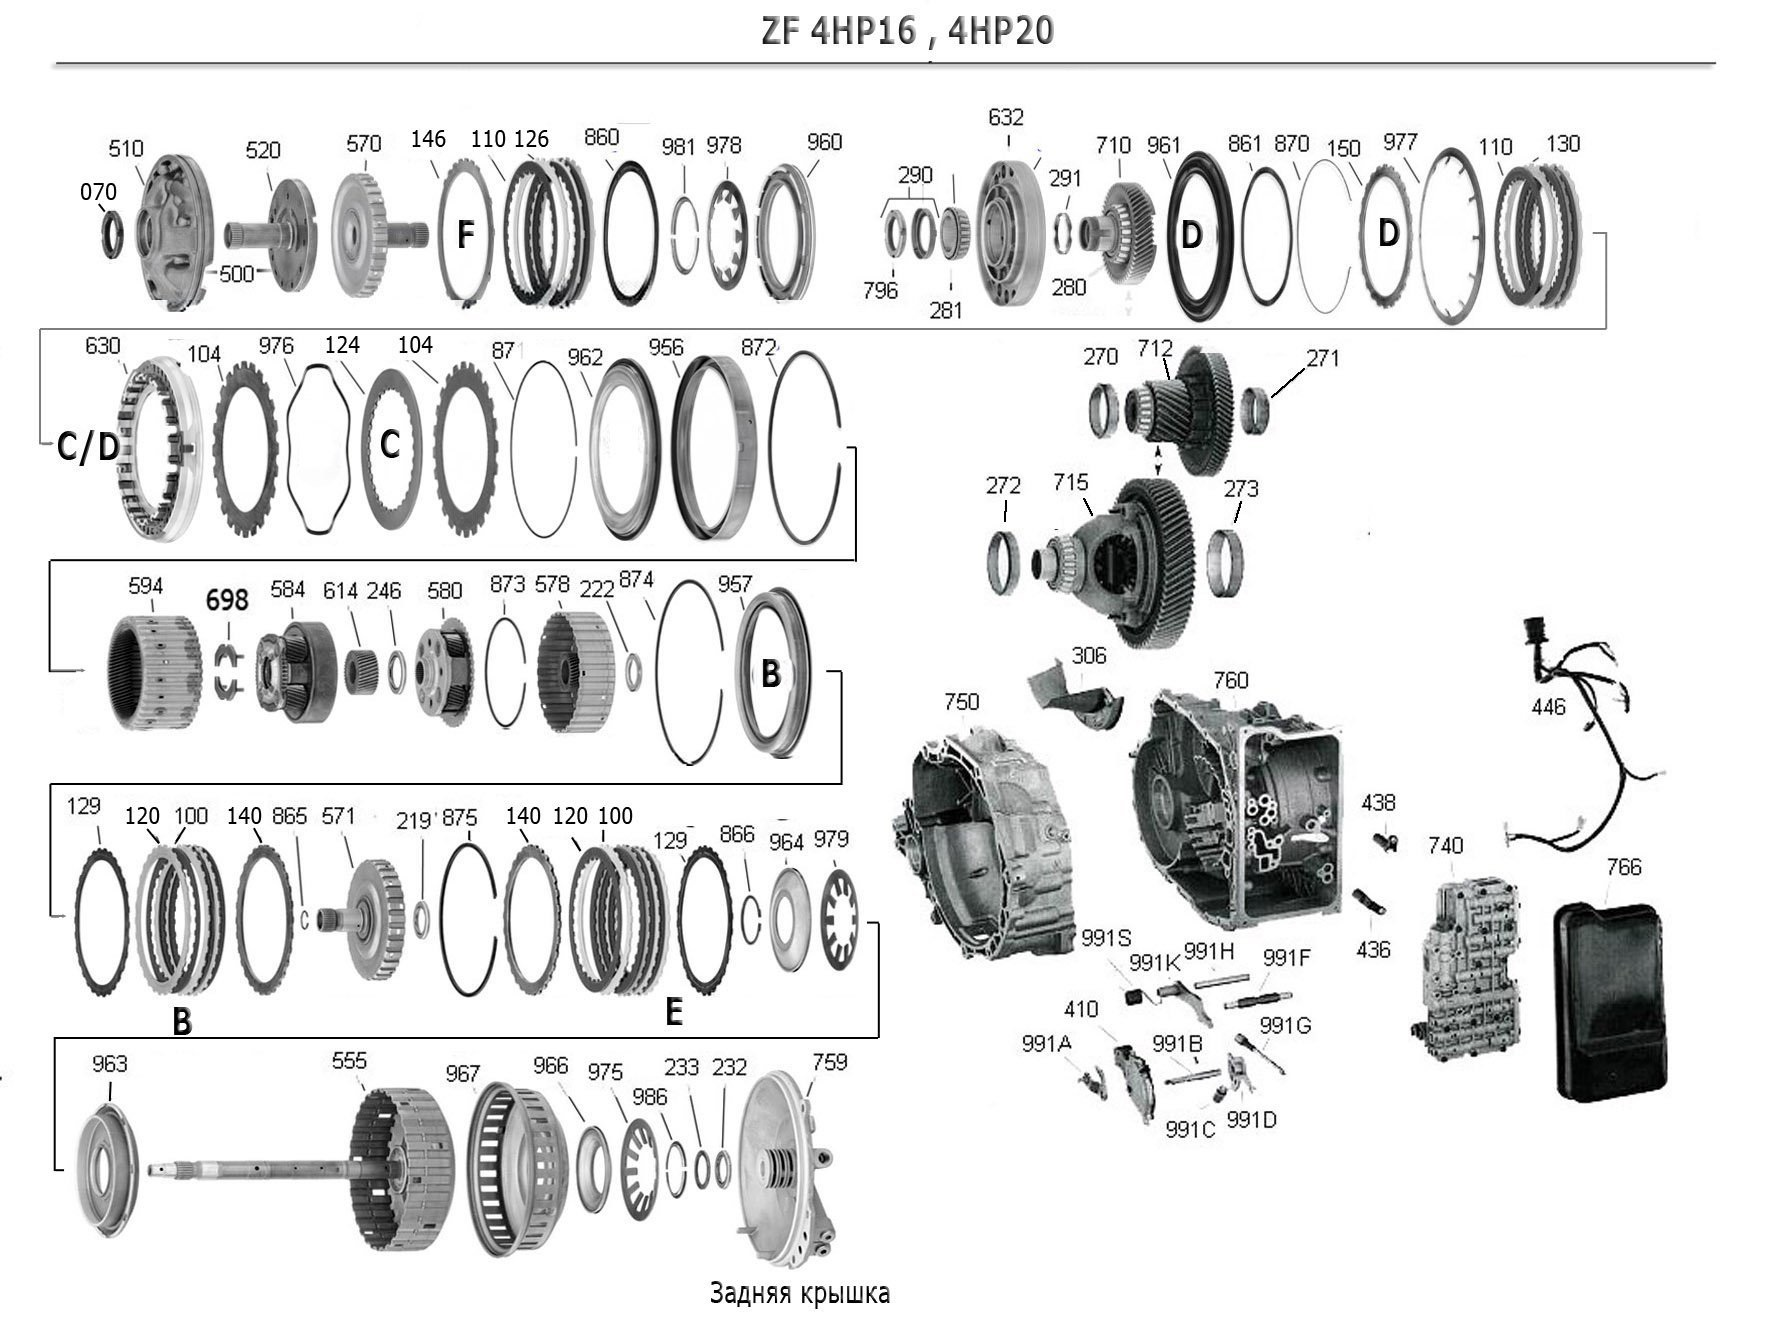 4HP20 Transmission parts, repair guidelines, problems, manuals